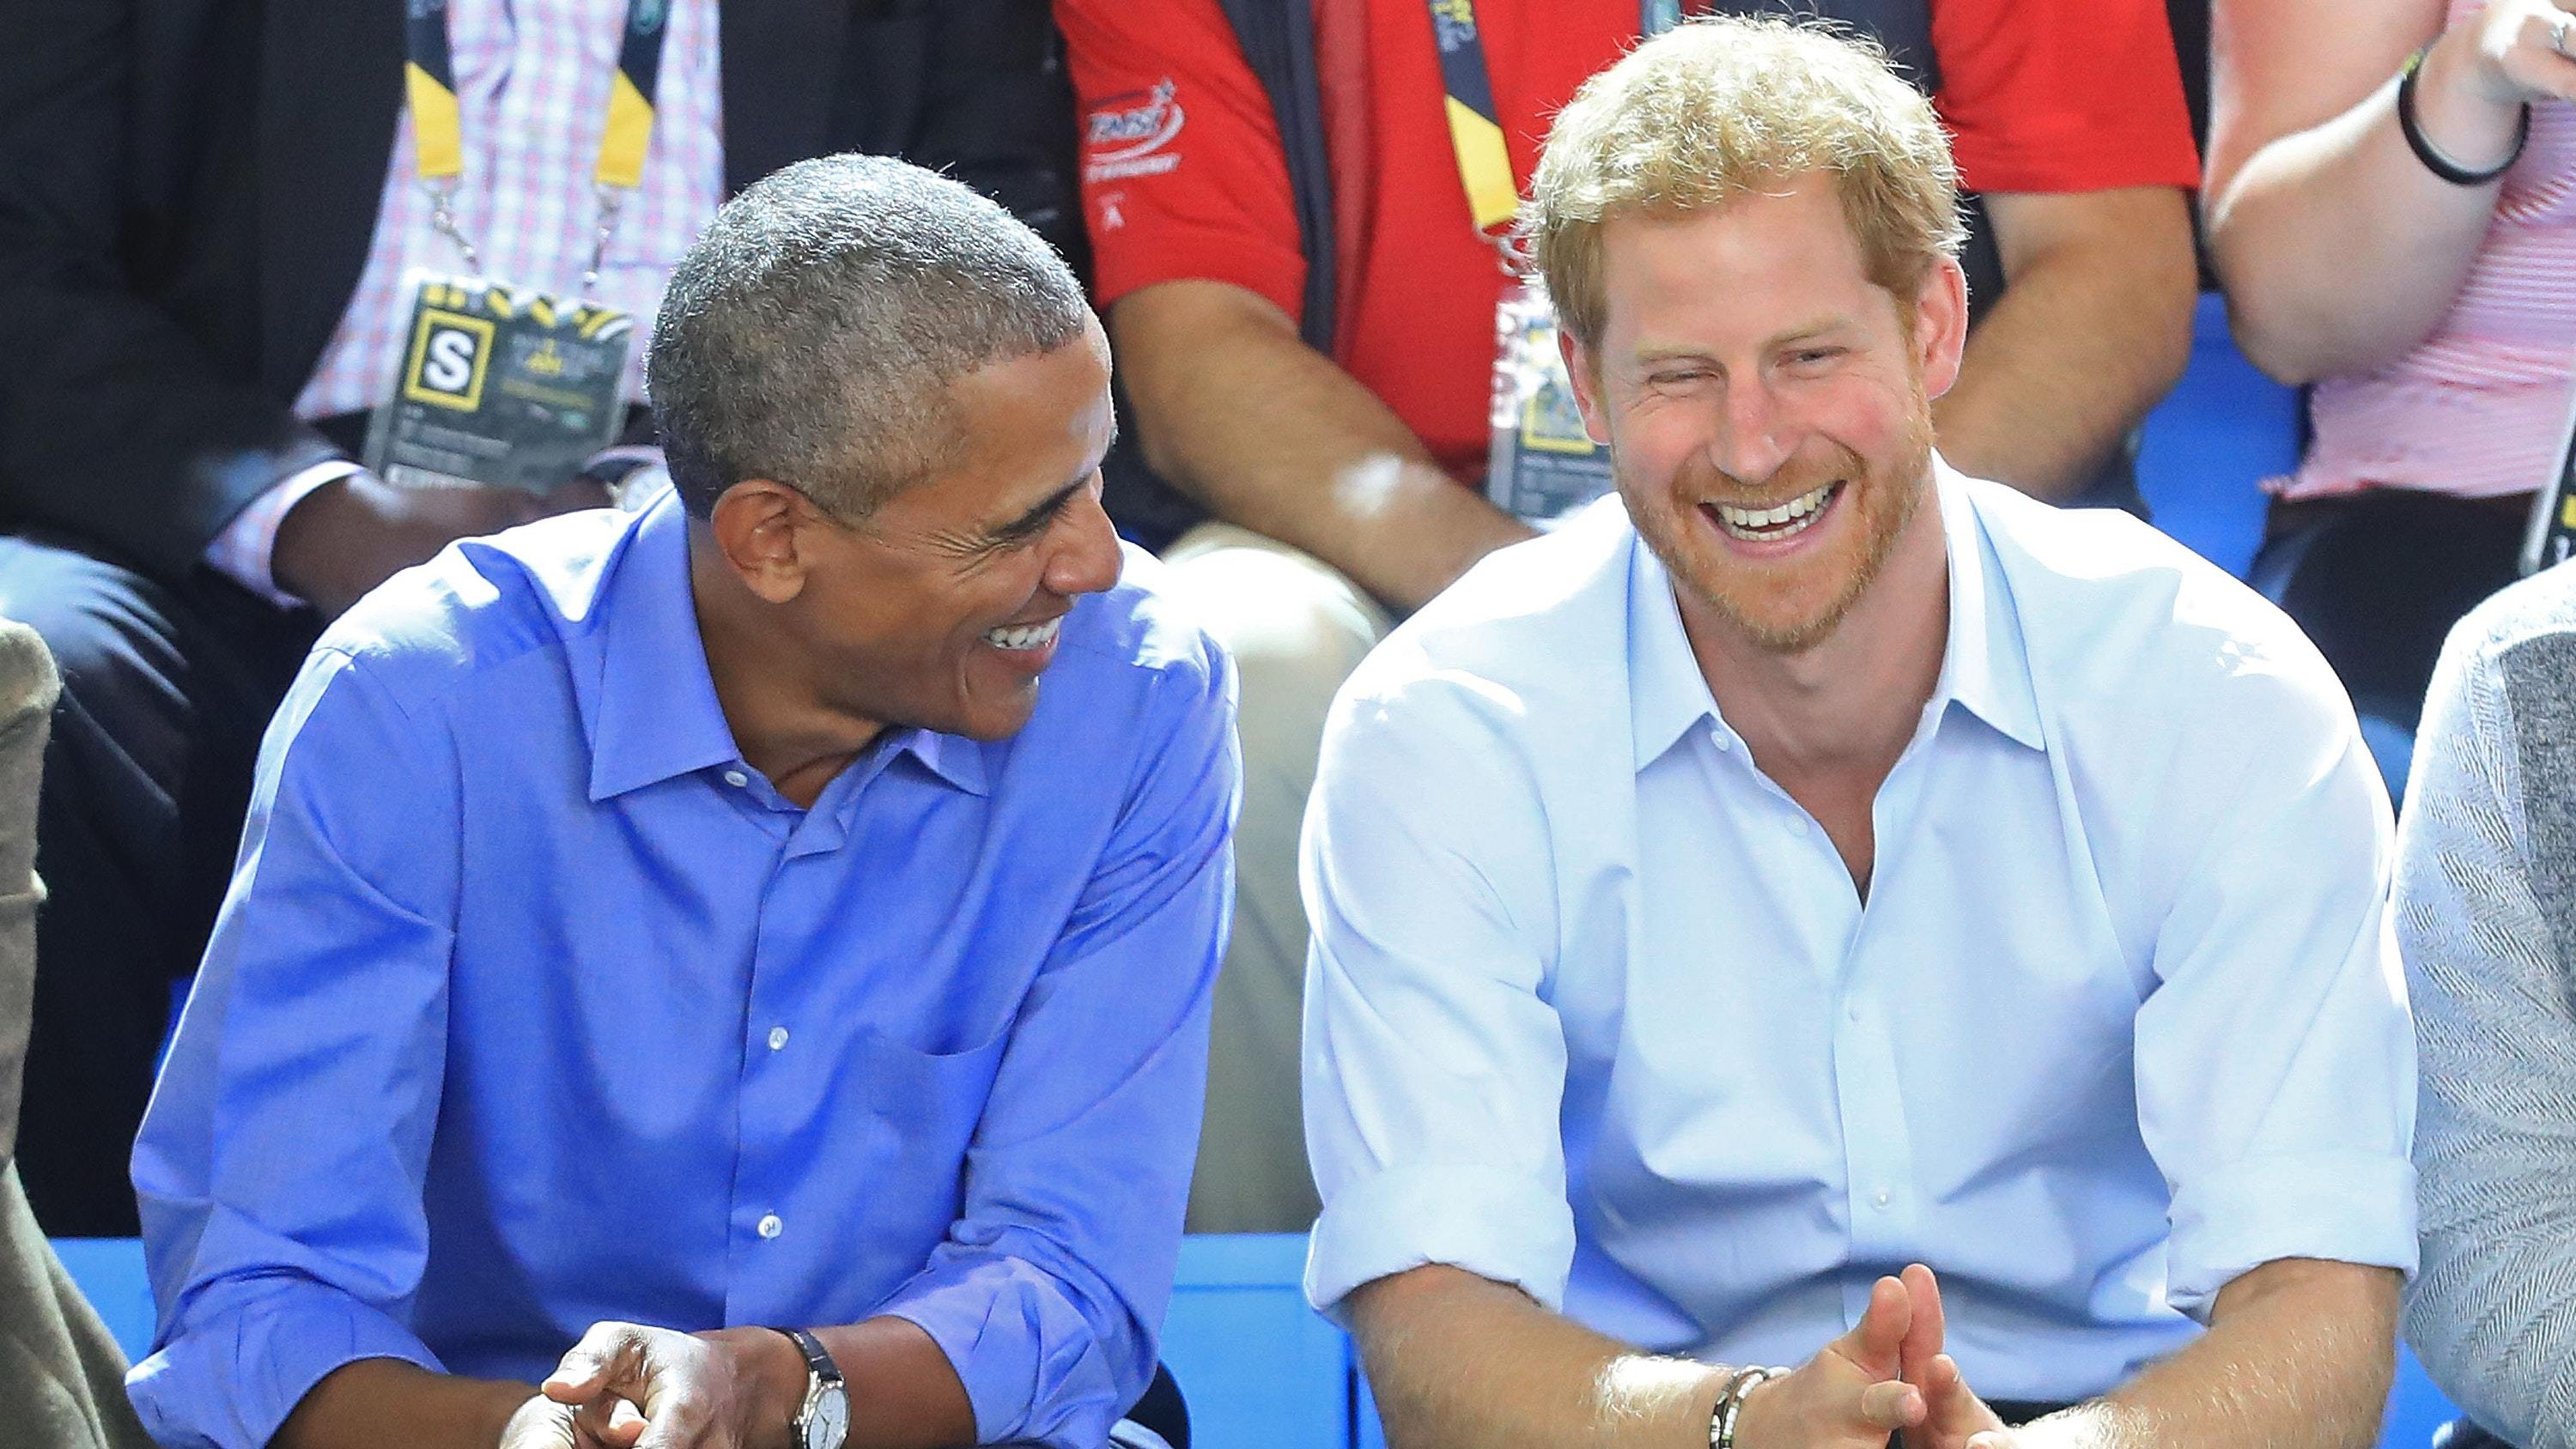 Former US president Barack Obama and Prince Harry at the Invictus Games (Danny Lawson/PA)